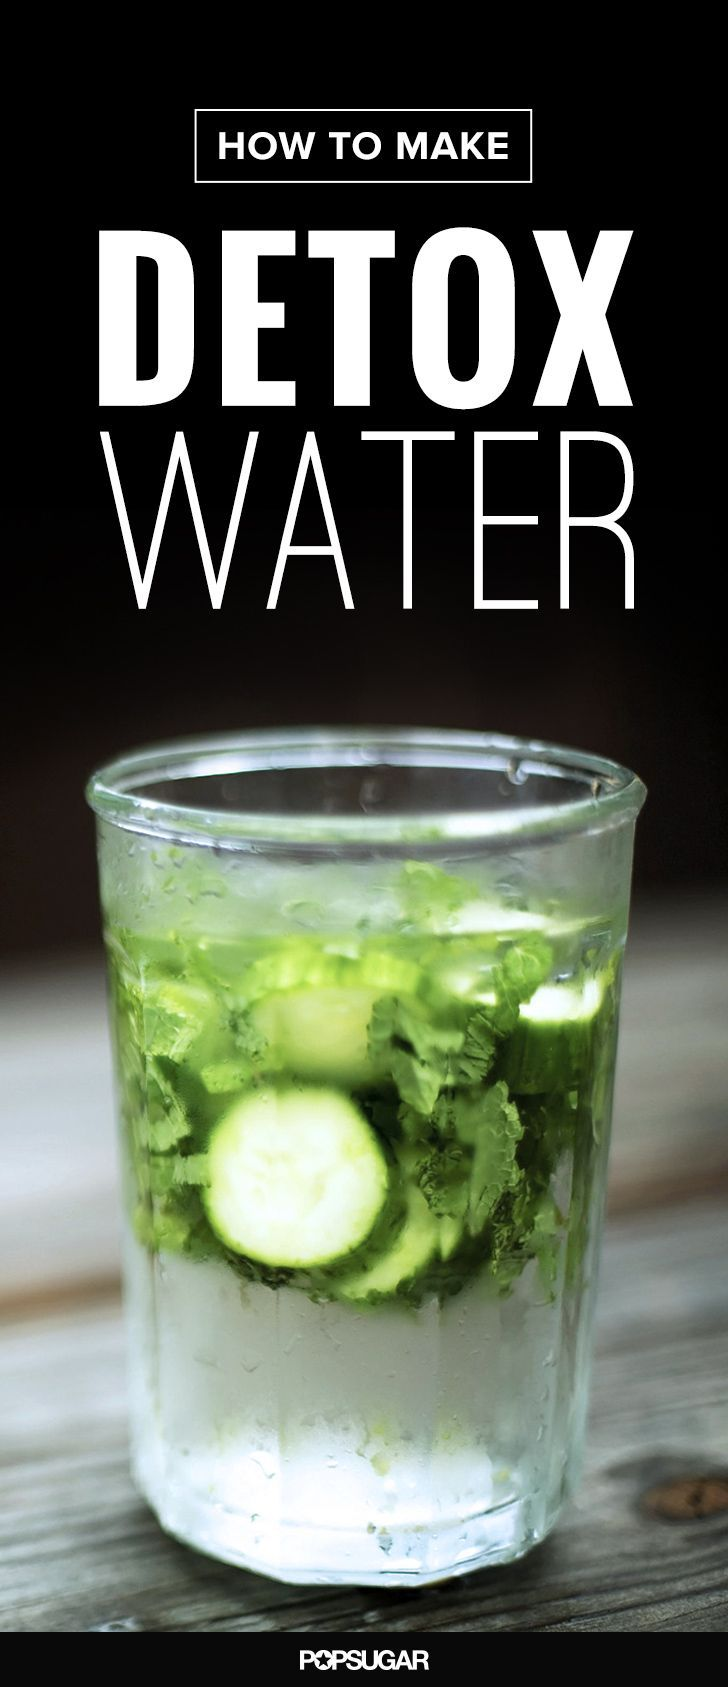 Add these fresh ingredients to your water for double the detox power!